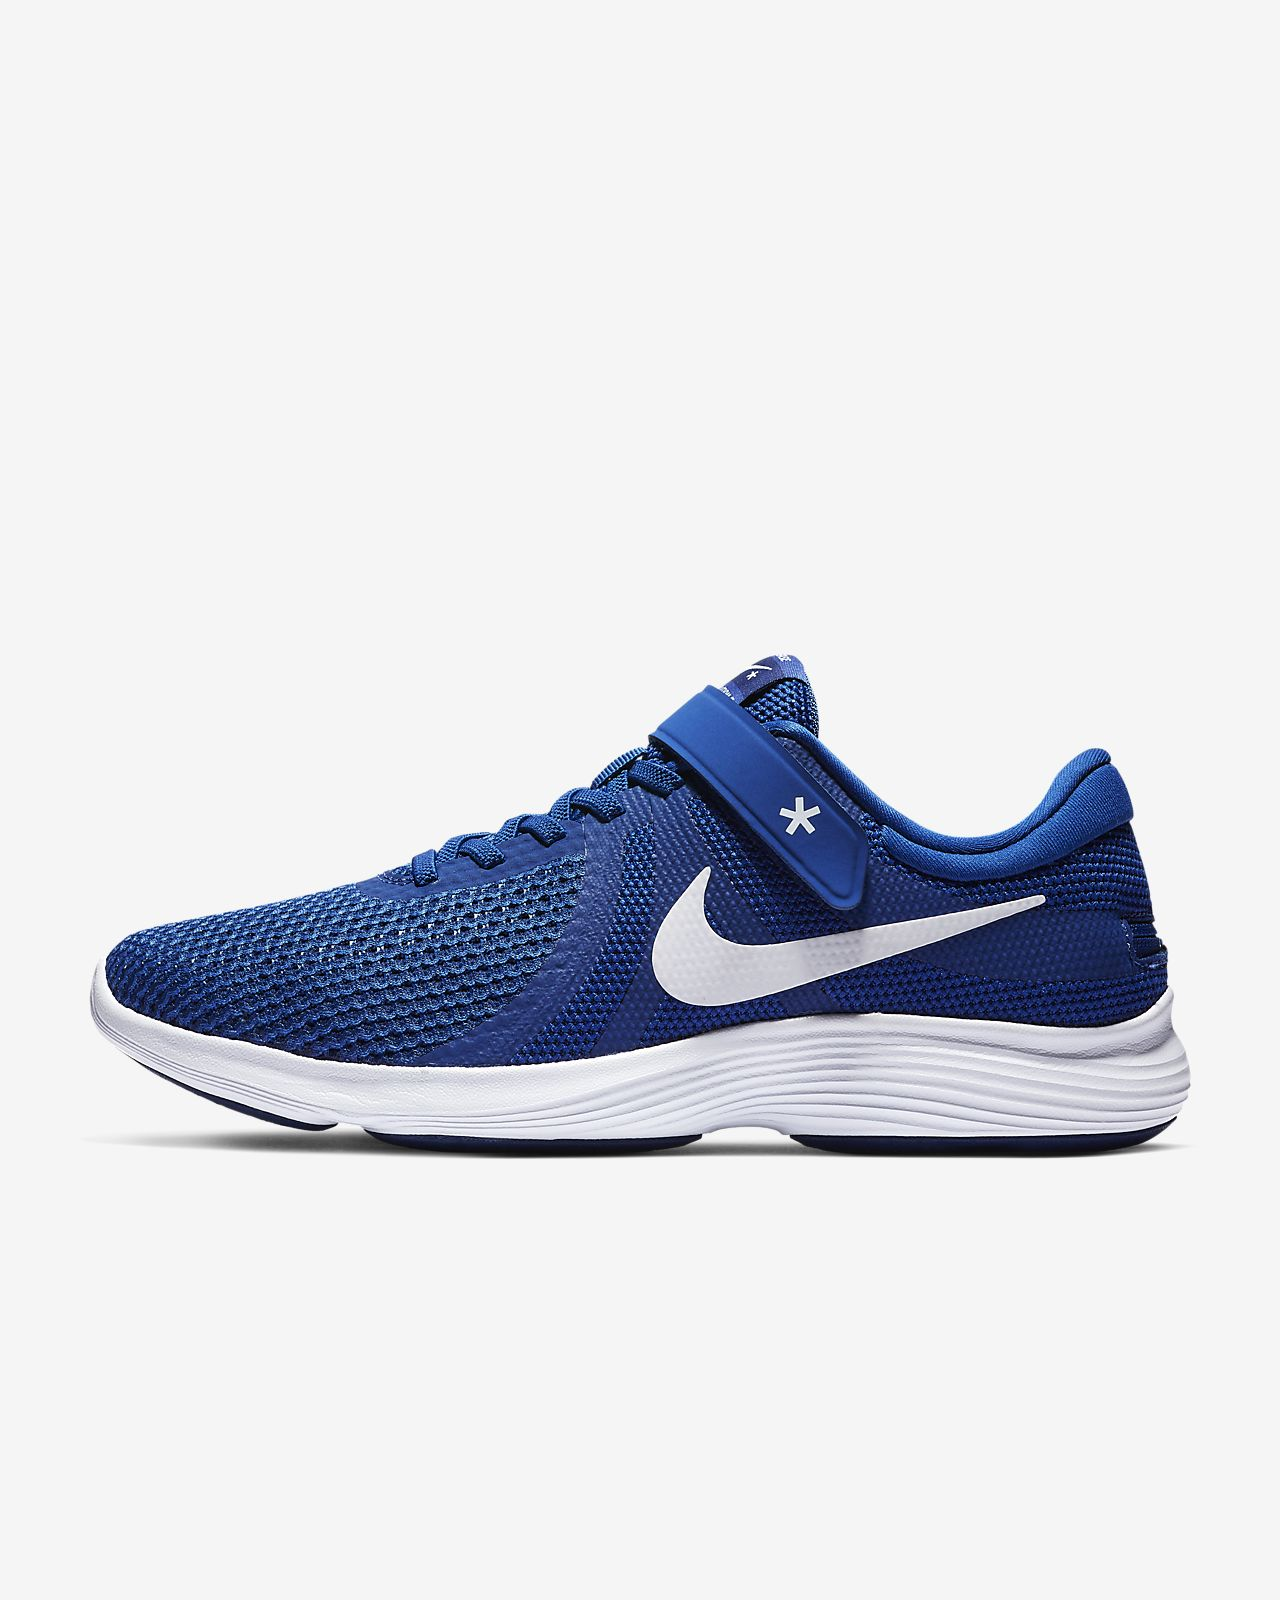 Revolution 4 Ca Flyease Chaussure Nike Pour Homme De Running q8AtI